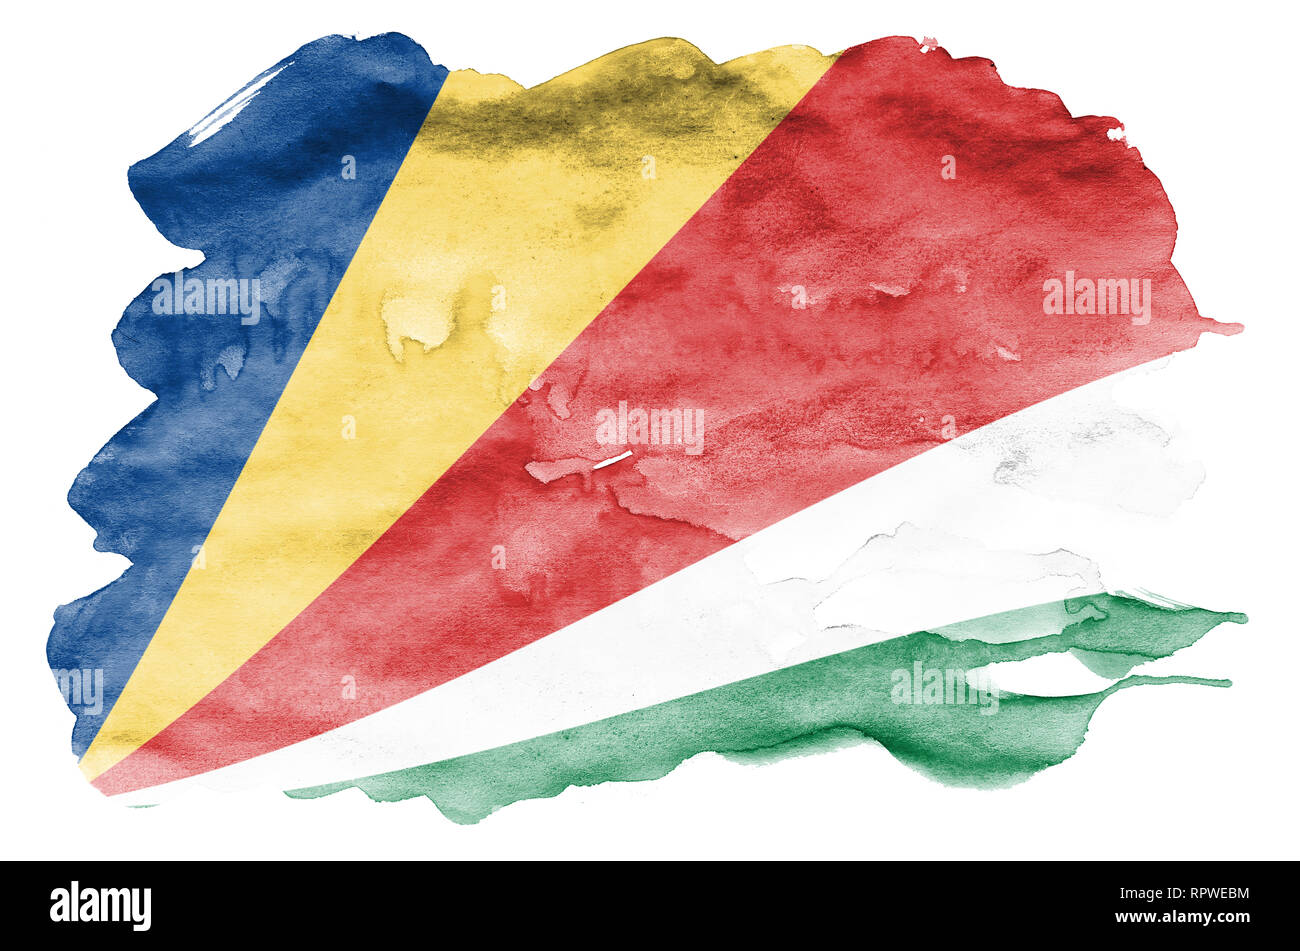 Seychelles flag  is depicted in liquid watercolor style isolated on white background. Careless paint shading with image of national flag. Independence - Stock Image